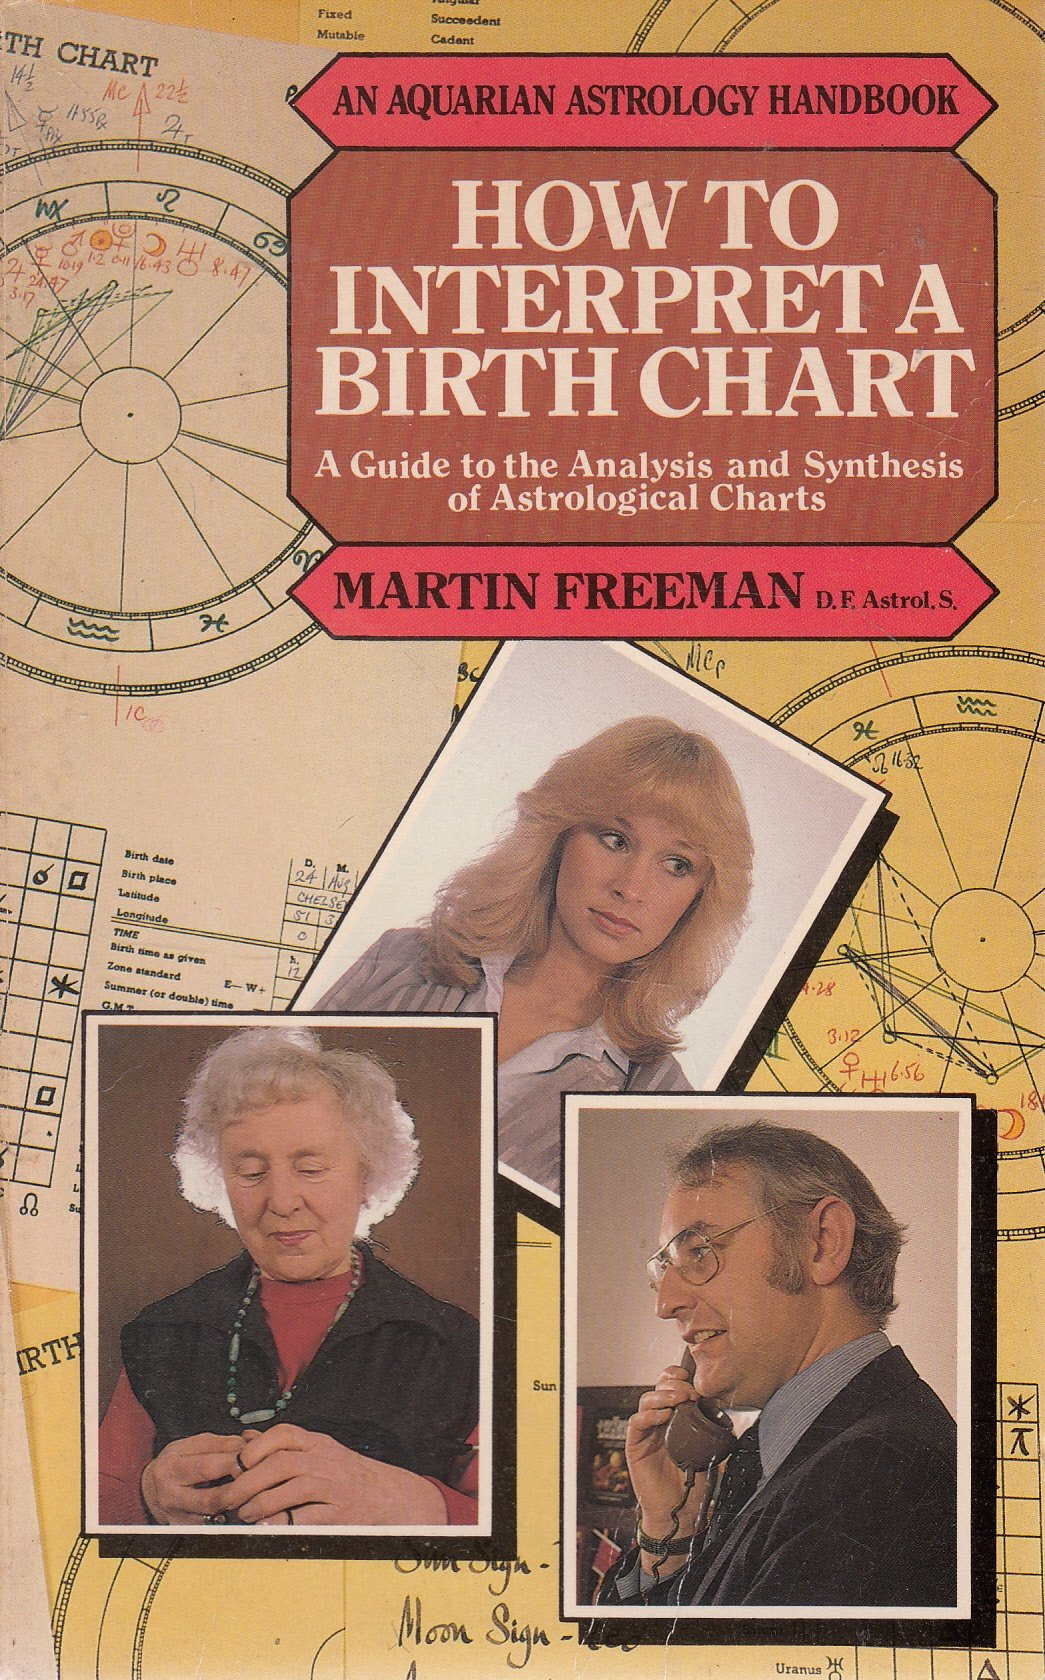 How to interpret a birth chart guide to the analysis and how to interpret a birth chart guide to the analysis and synthesis of astrological charts astrology handbooks martin freeman 9780850302493 amazon nvjuhfo Choice Image